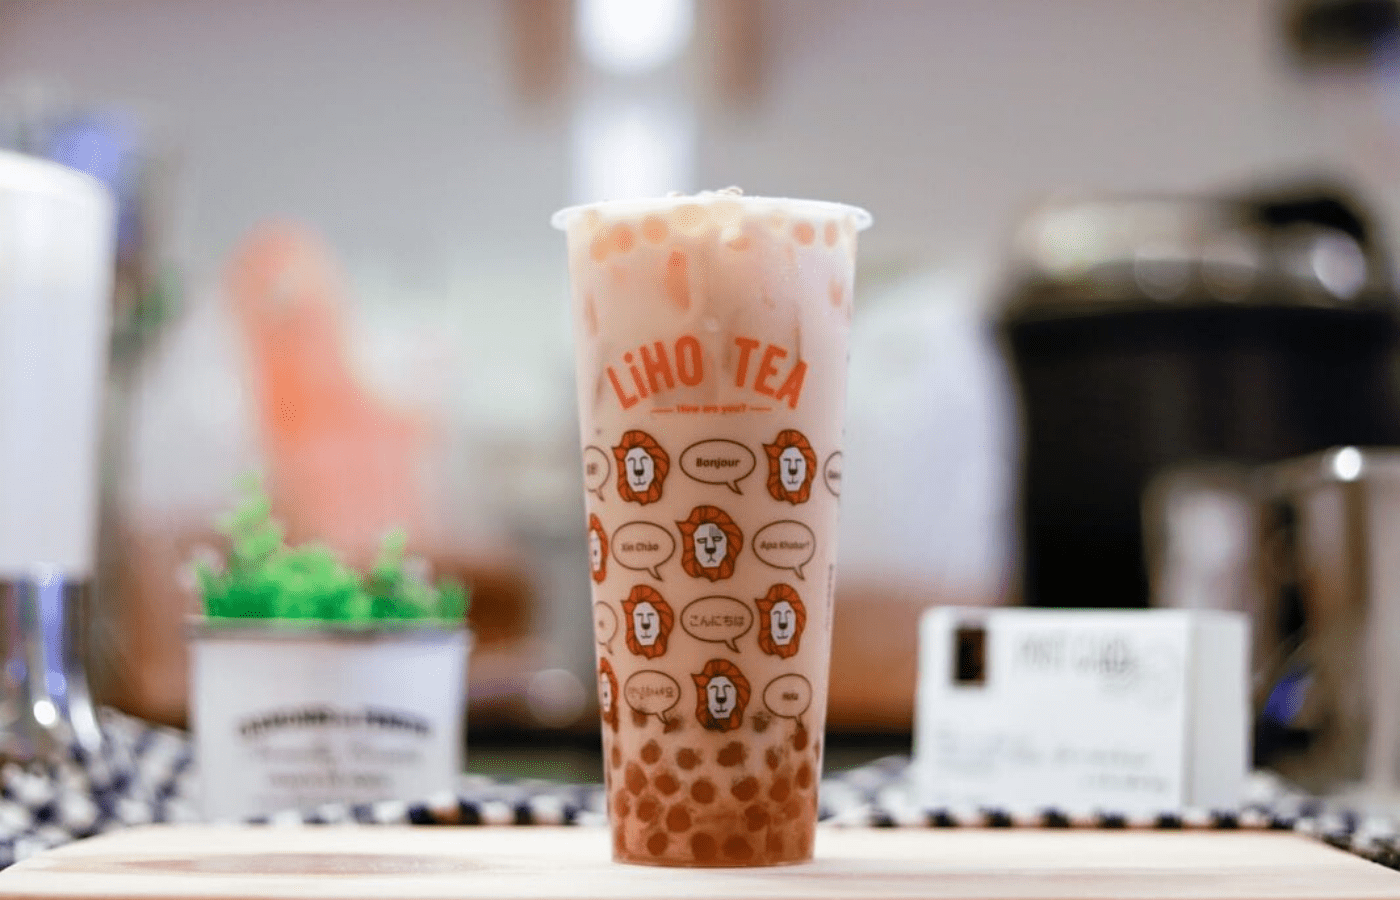 liho | Where to get bubble tea in Singapore